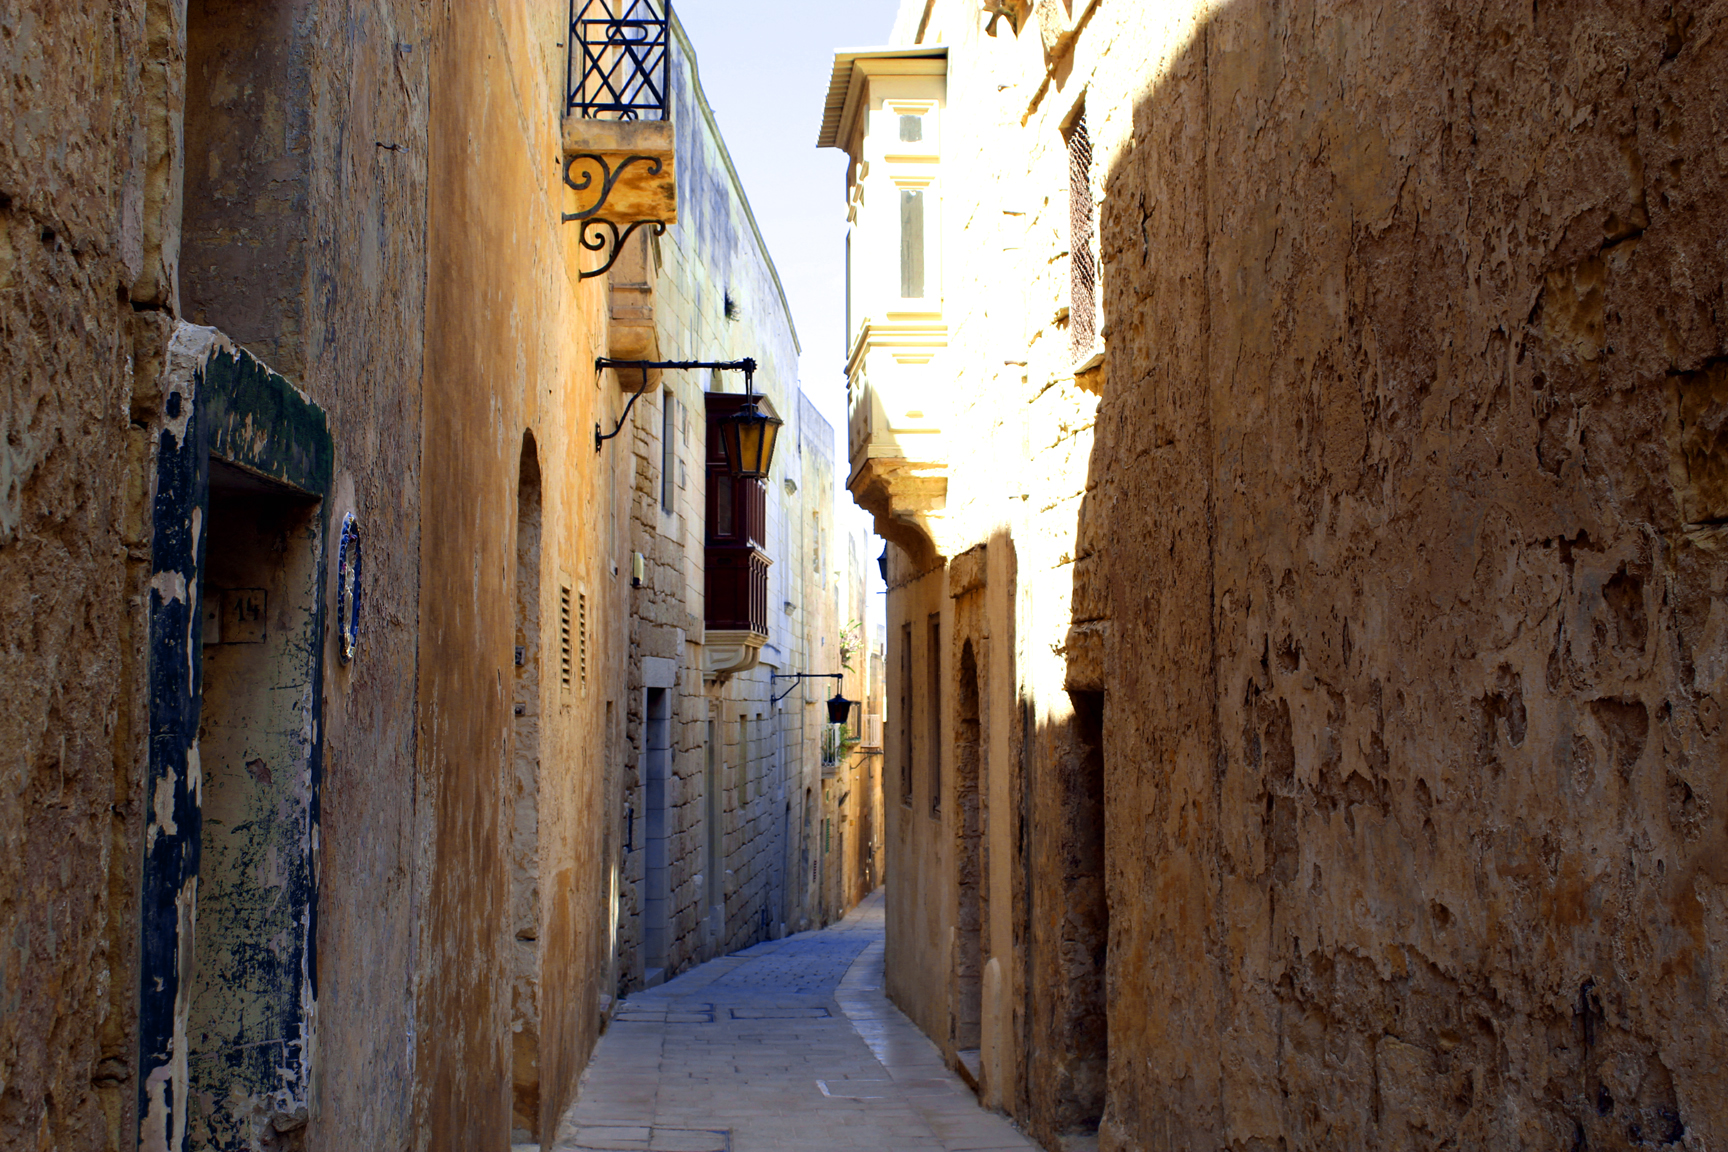 30-Days in Malta. Mdina passage. Photo: Charlebois